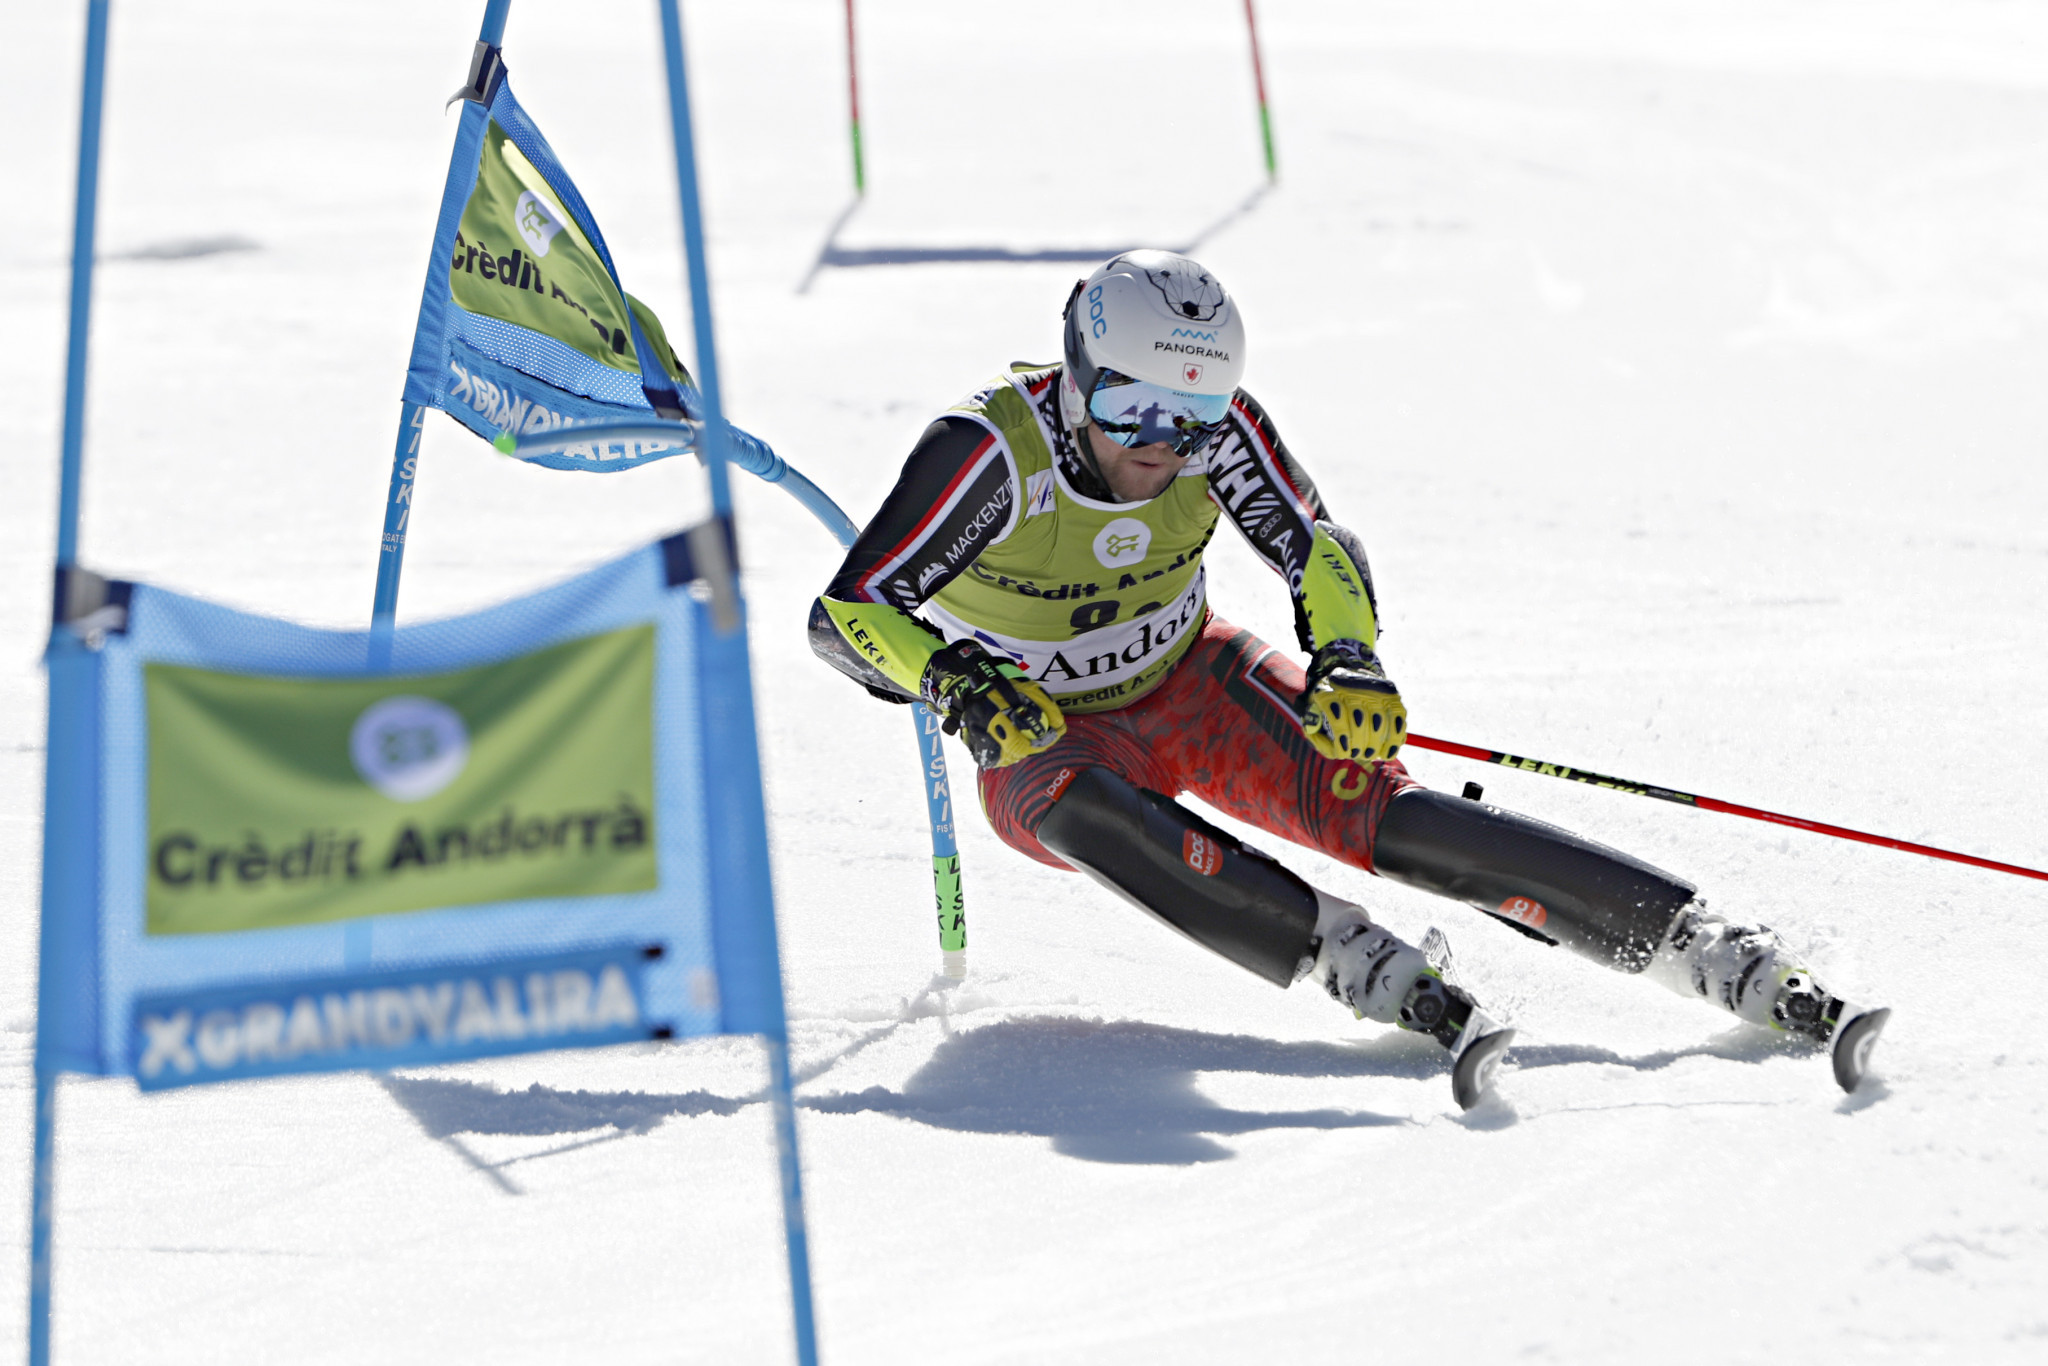 Benjamin Thomsen is among the 25 athletes nominated to the Canadian Alpine ski team for the 2019-2020 season ©Getty Images